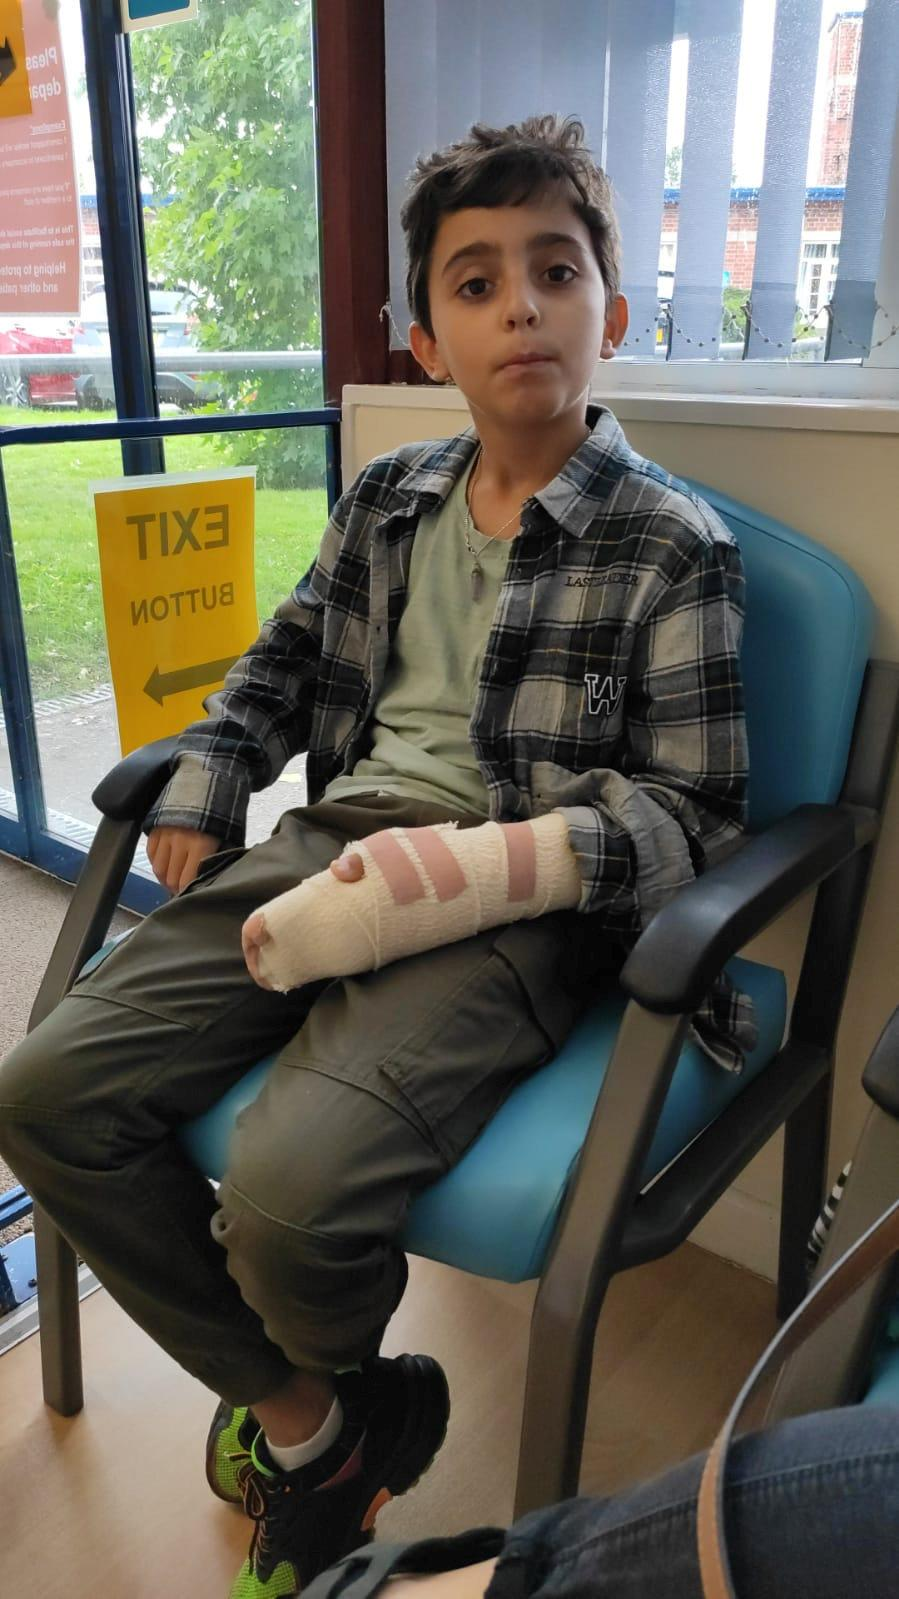 Oliver, 9, will need intensive physiotherapy to regain use of his hand (SWNS)